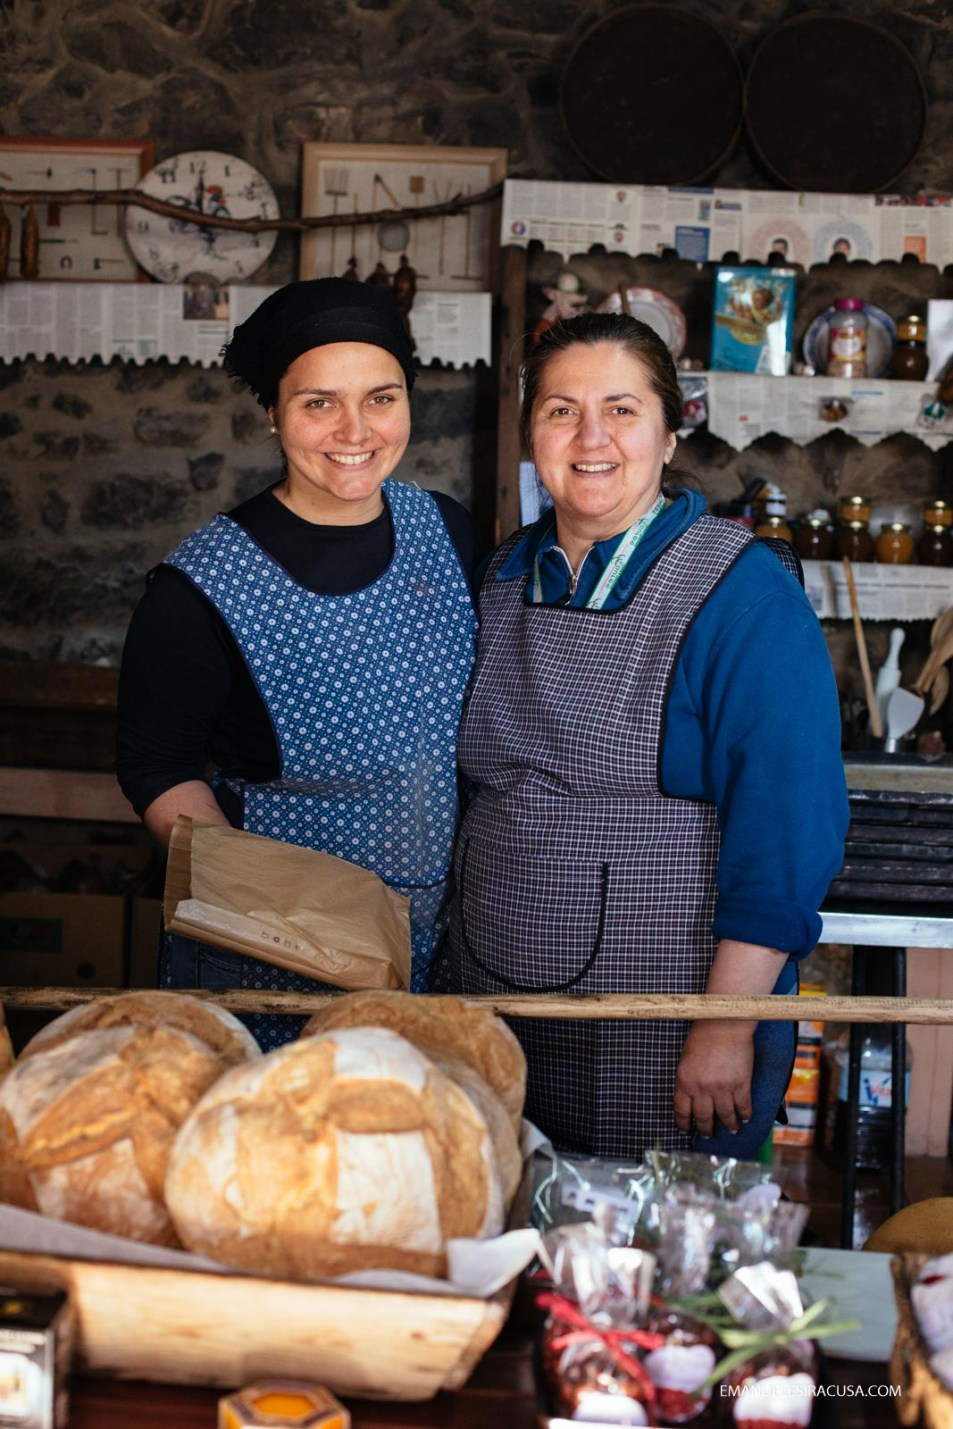 Tesouros de Penha Garcia, a local bakery making traditional baking products, Penha Garcia, 2016